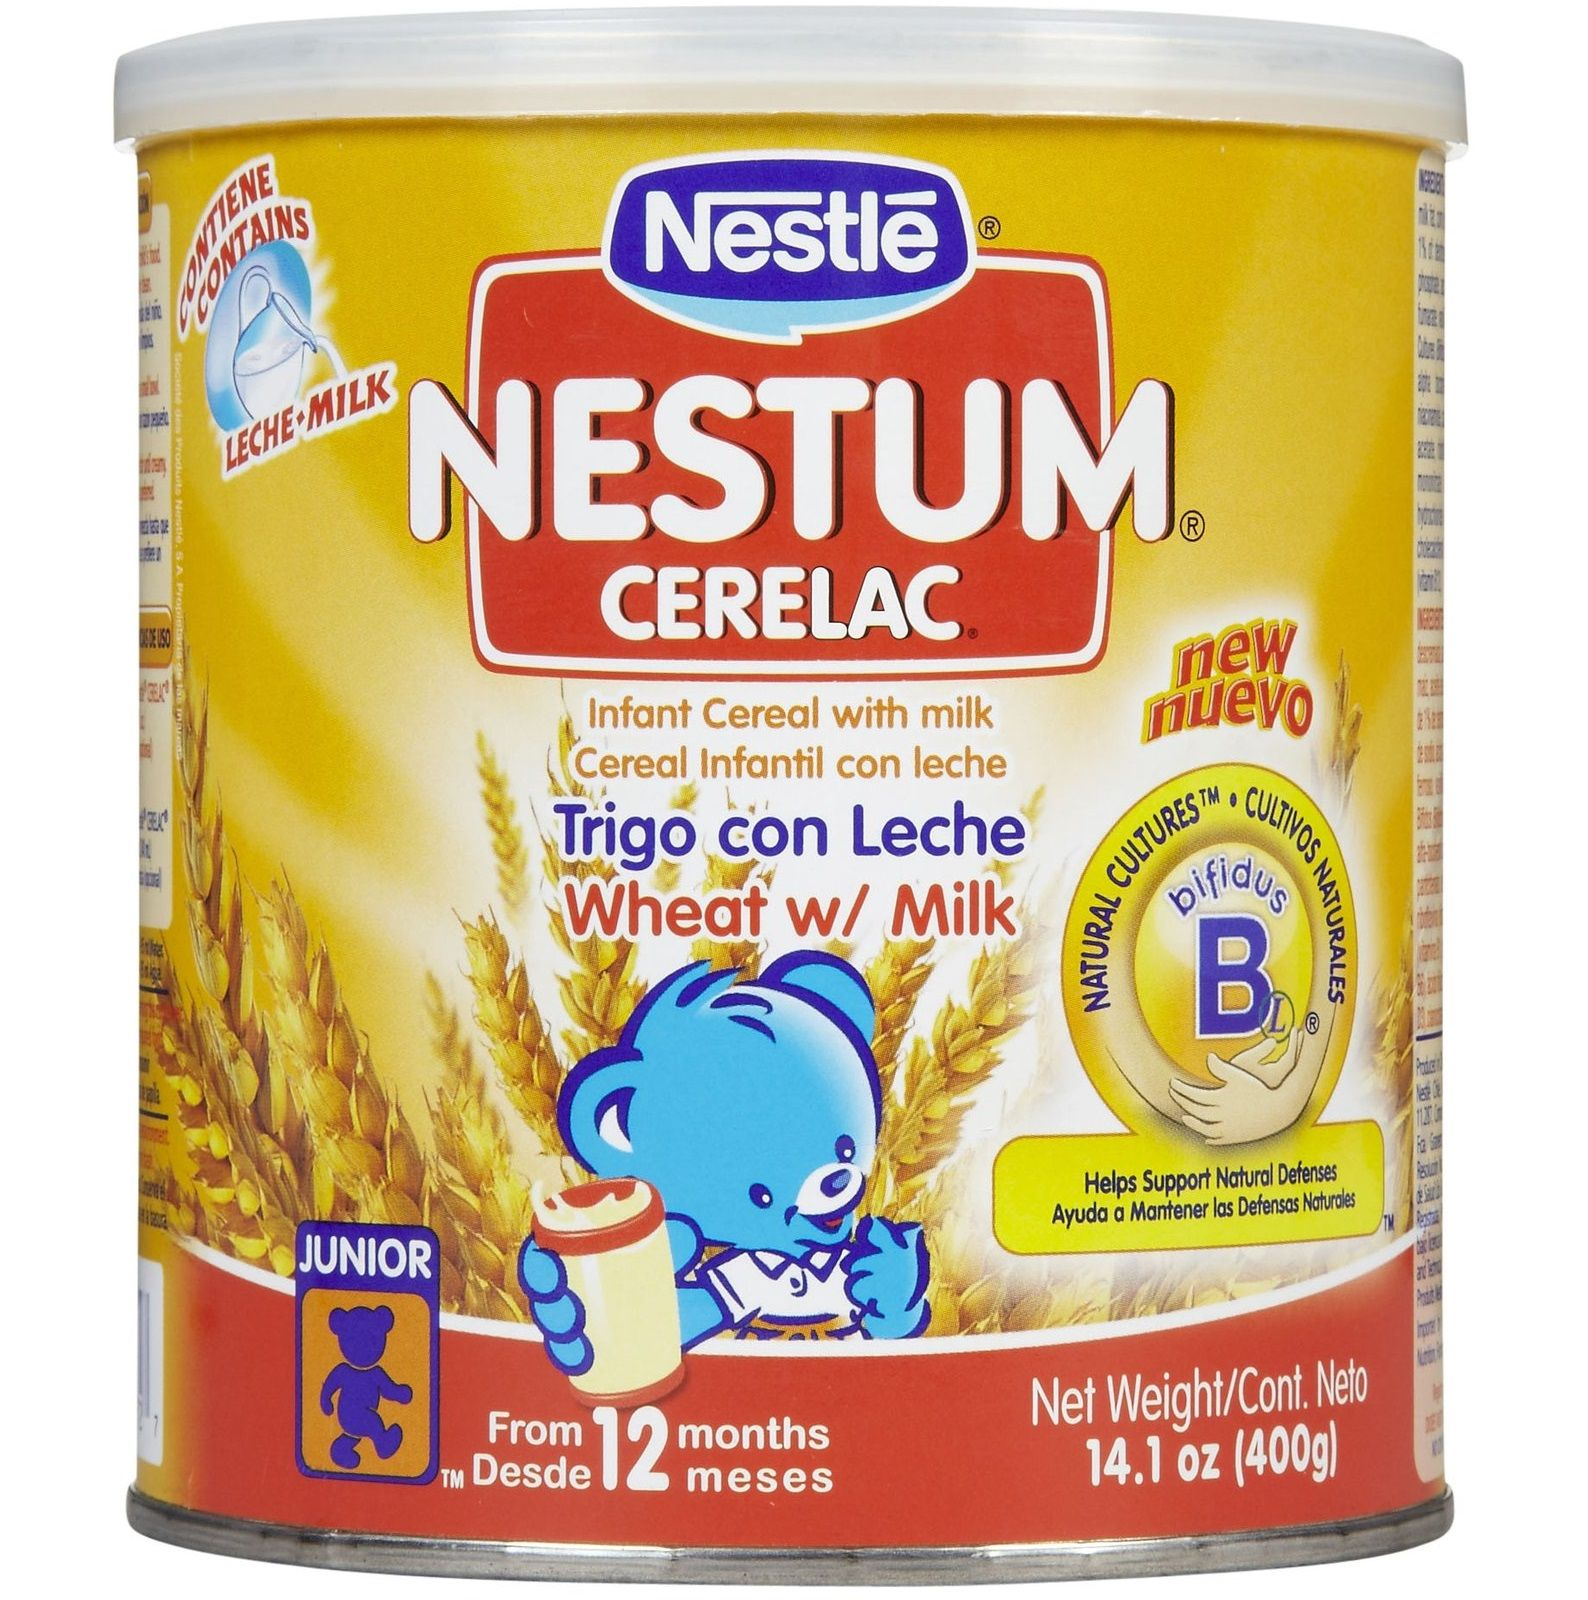 FREE CERELAC Infant Cereal